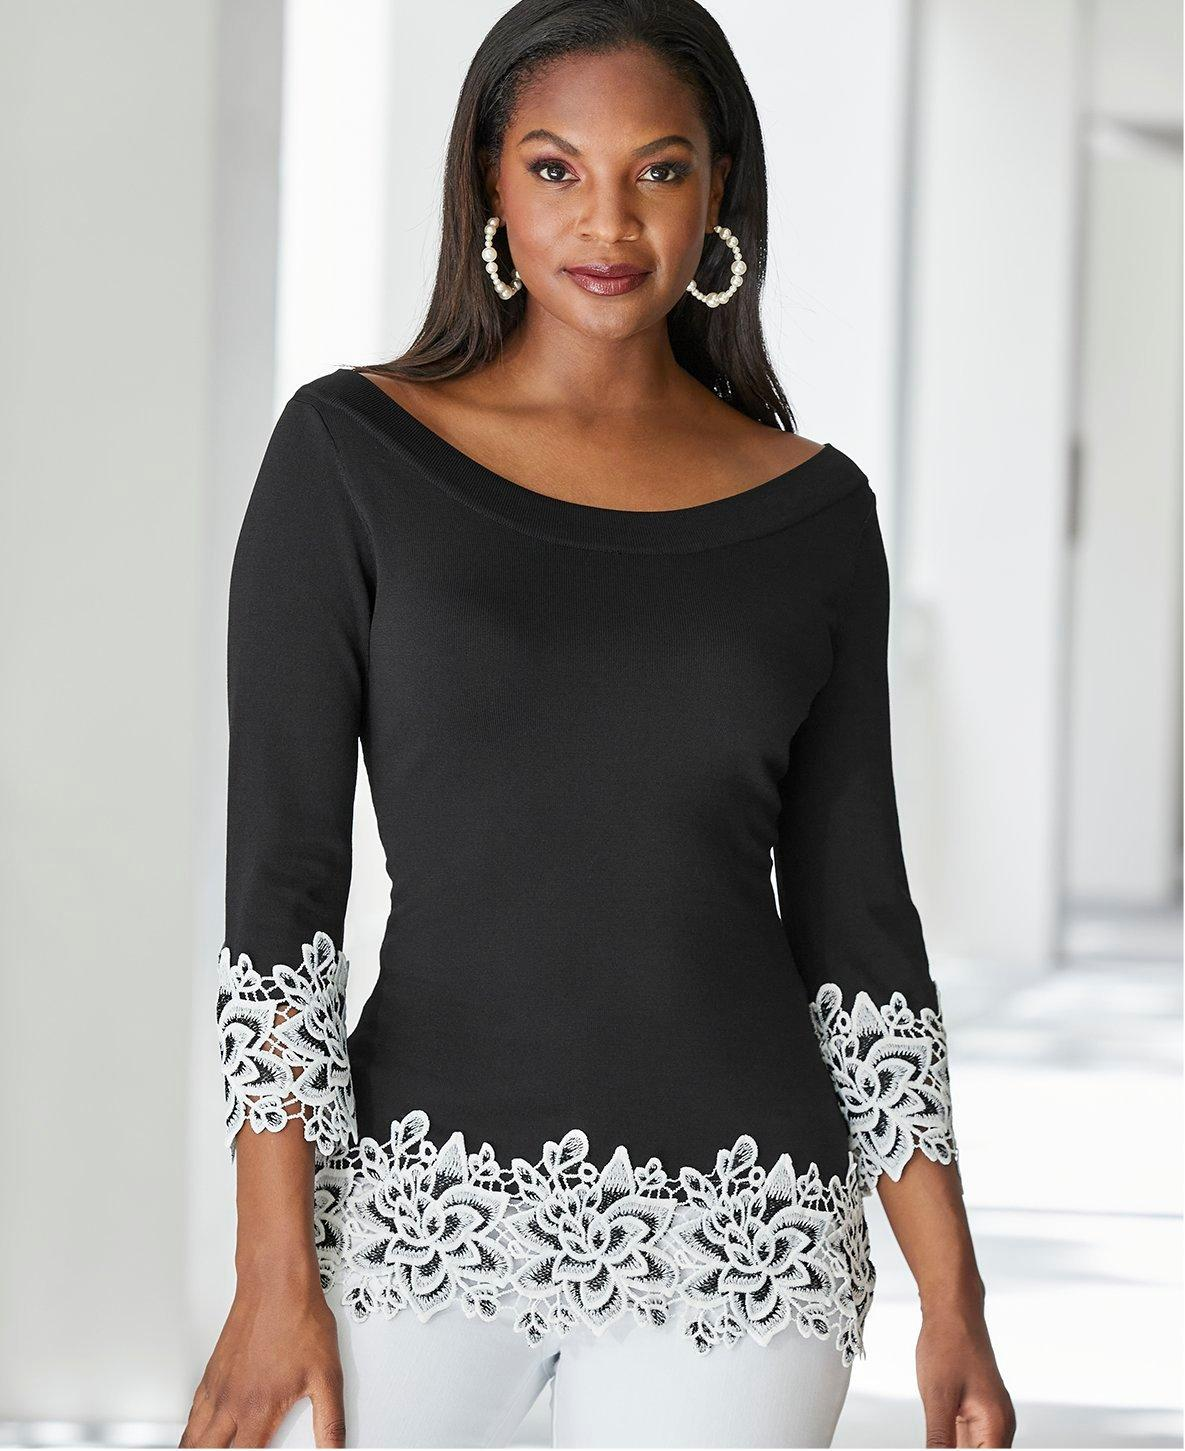 model wearing a black sweater with white lace trim, white pants, and pearl hoop earrings.